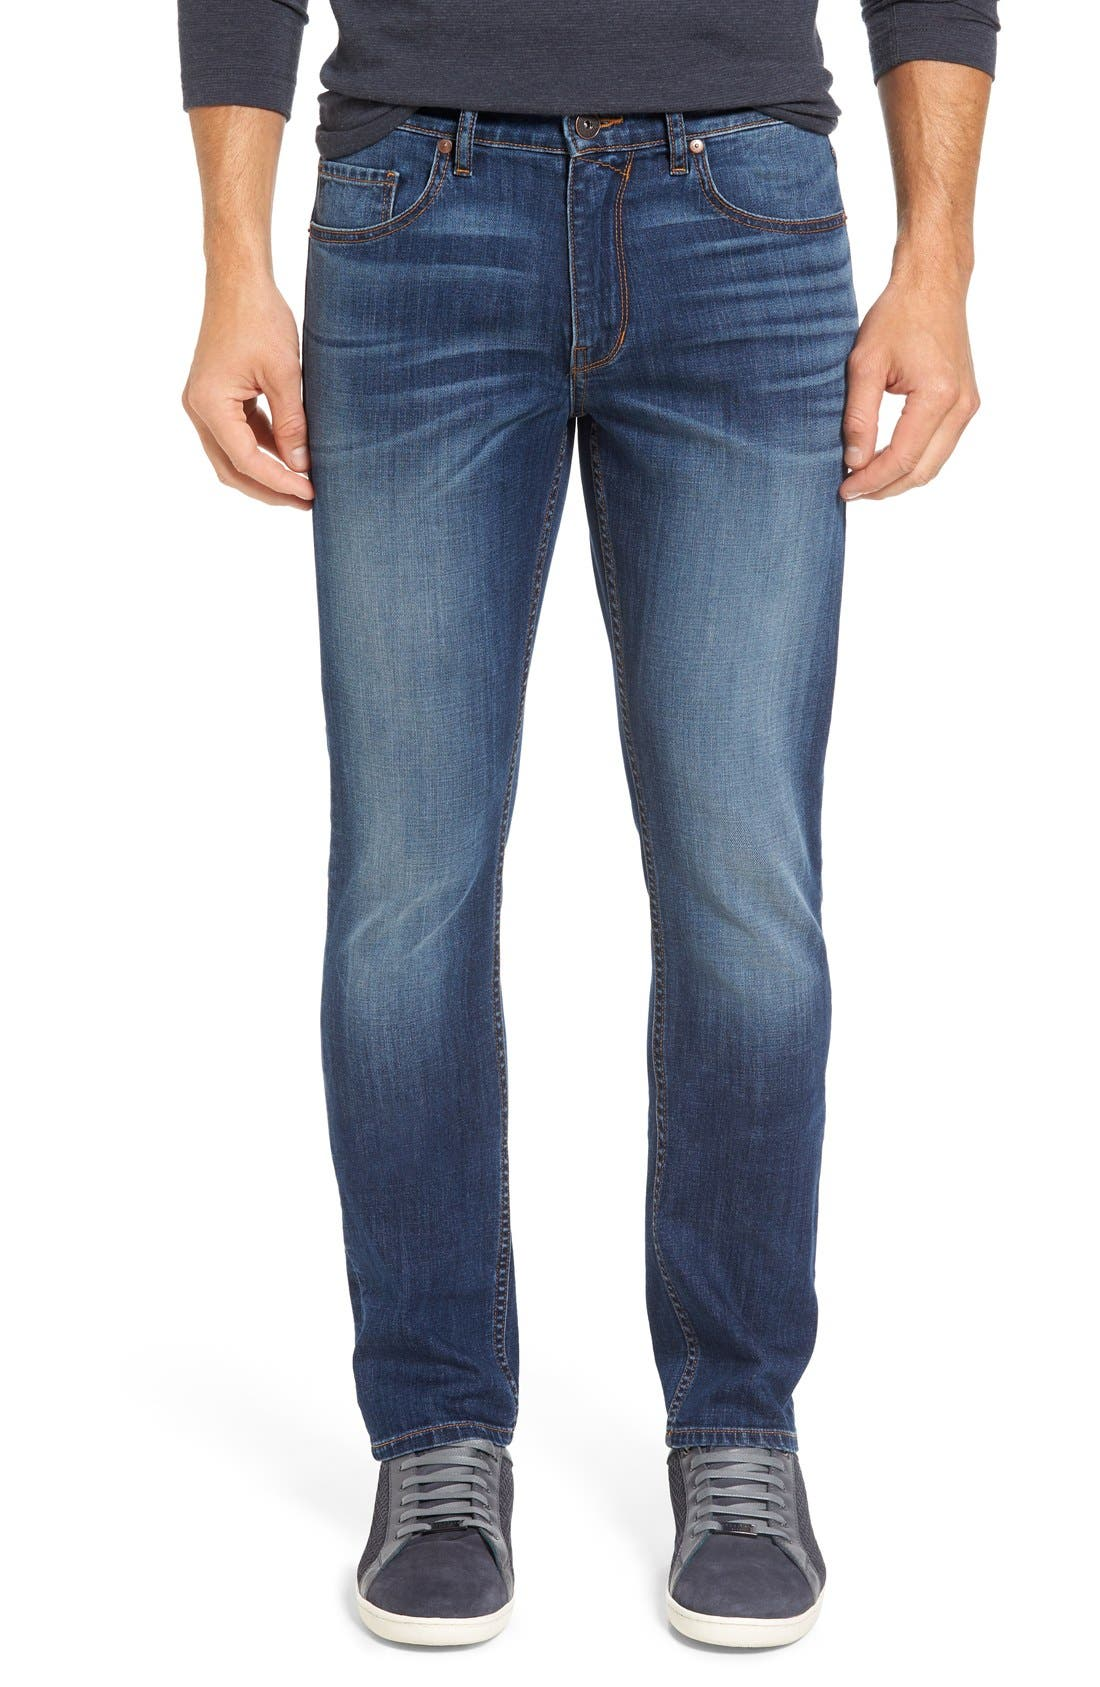 PAIGE Federal LEGACY Slim Straight Leg Jeans